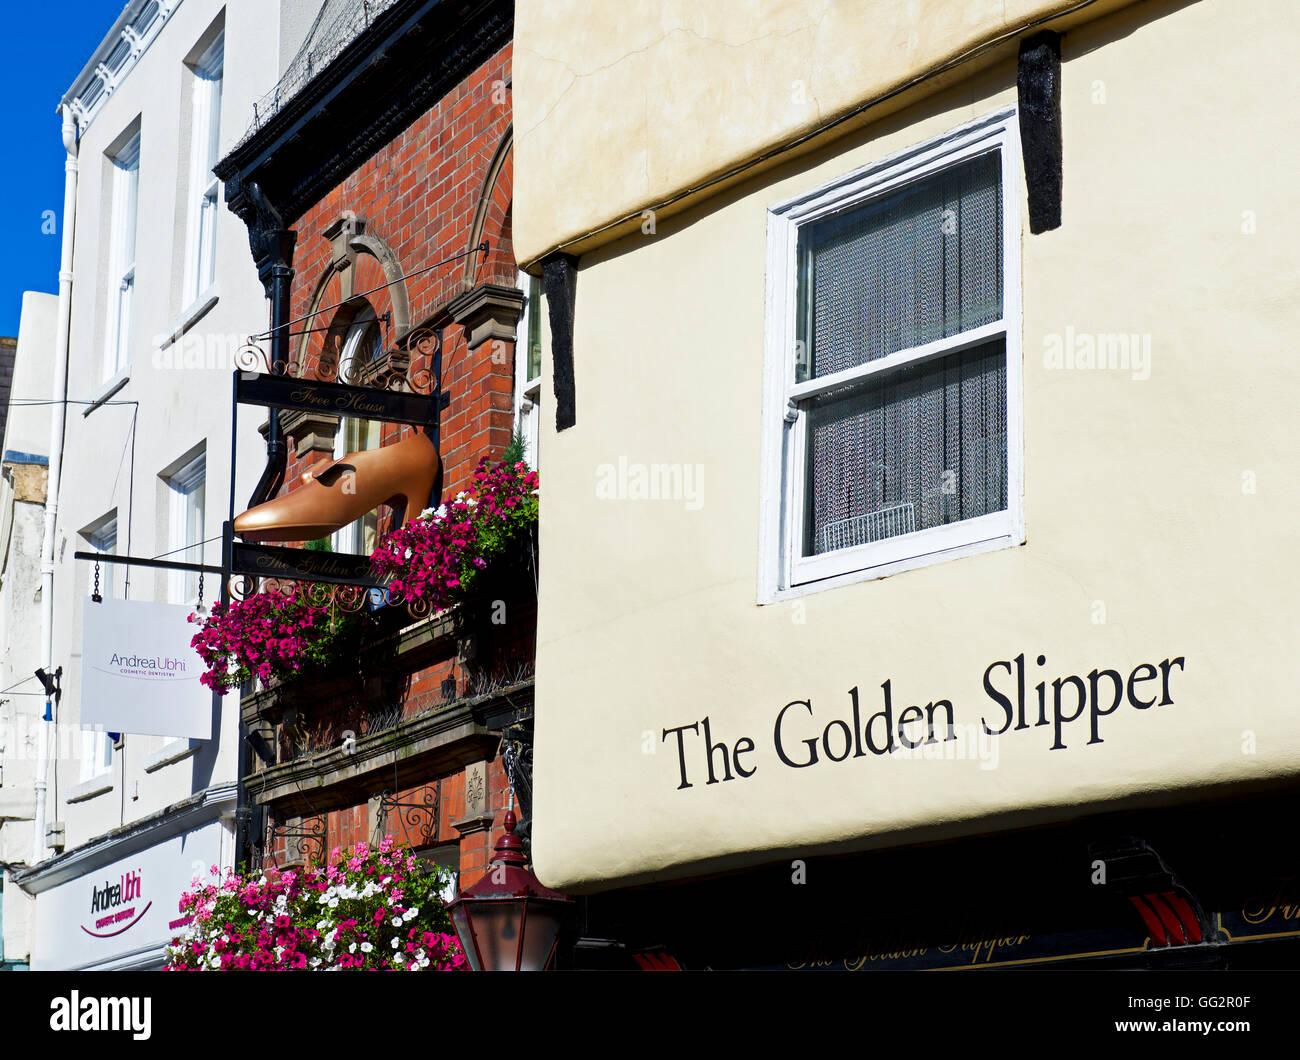 Sign above the Golden Slipper pub in Goodramgate, York, North Yorkshire, England UK - Stock Image